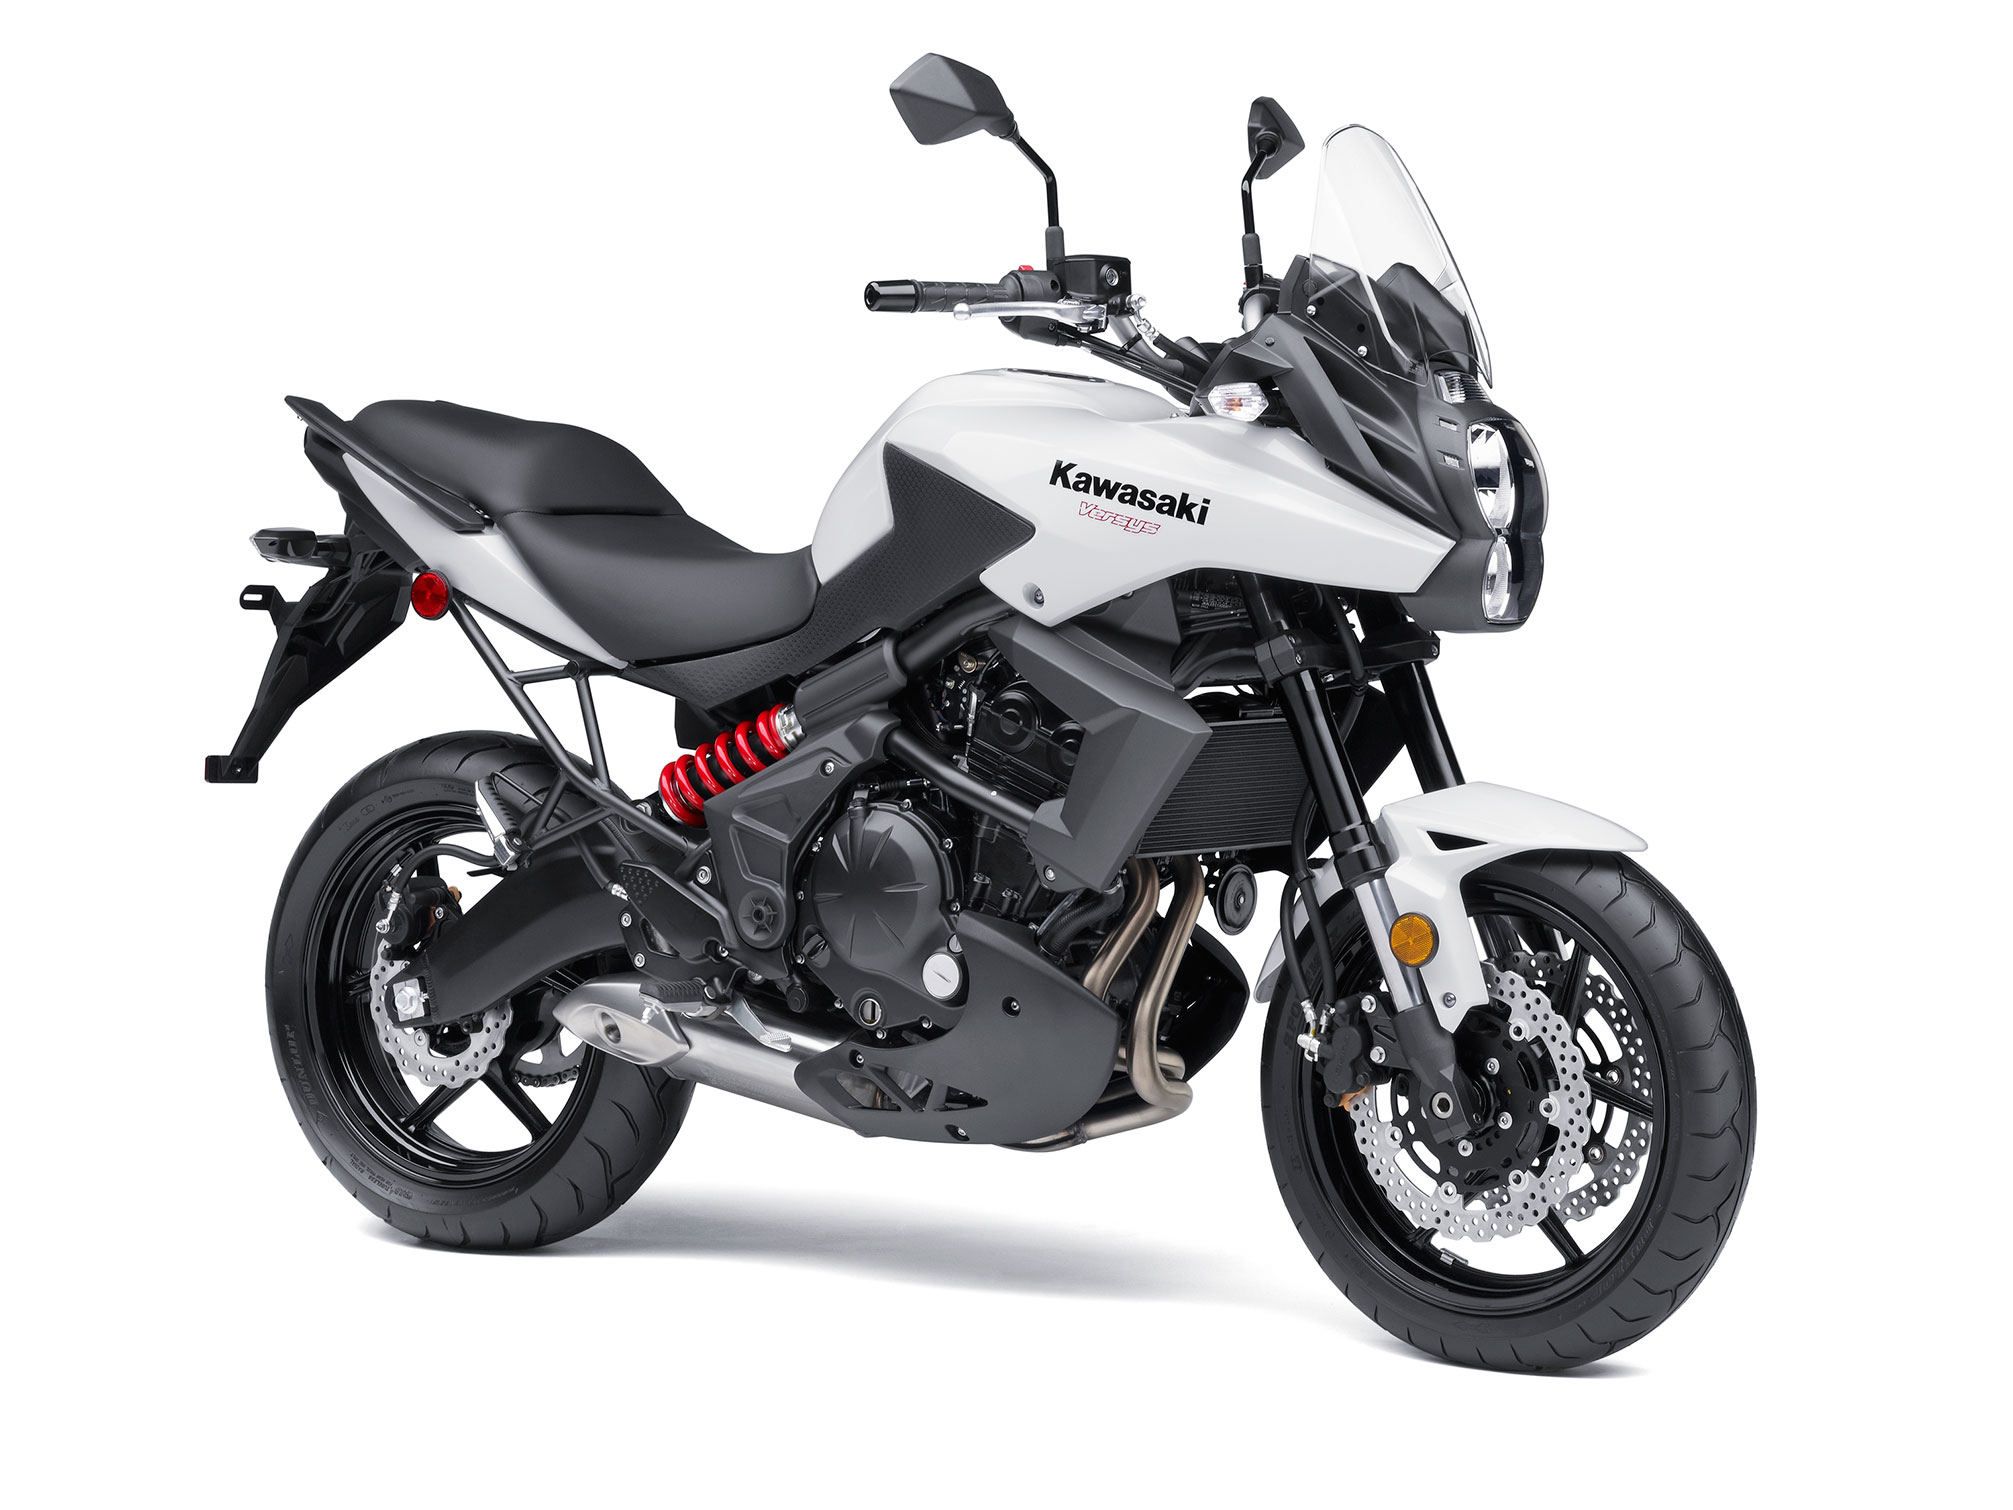 Kawasaki Versys For Sale Philippines